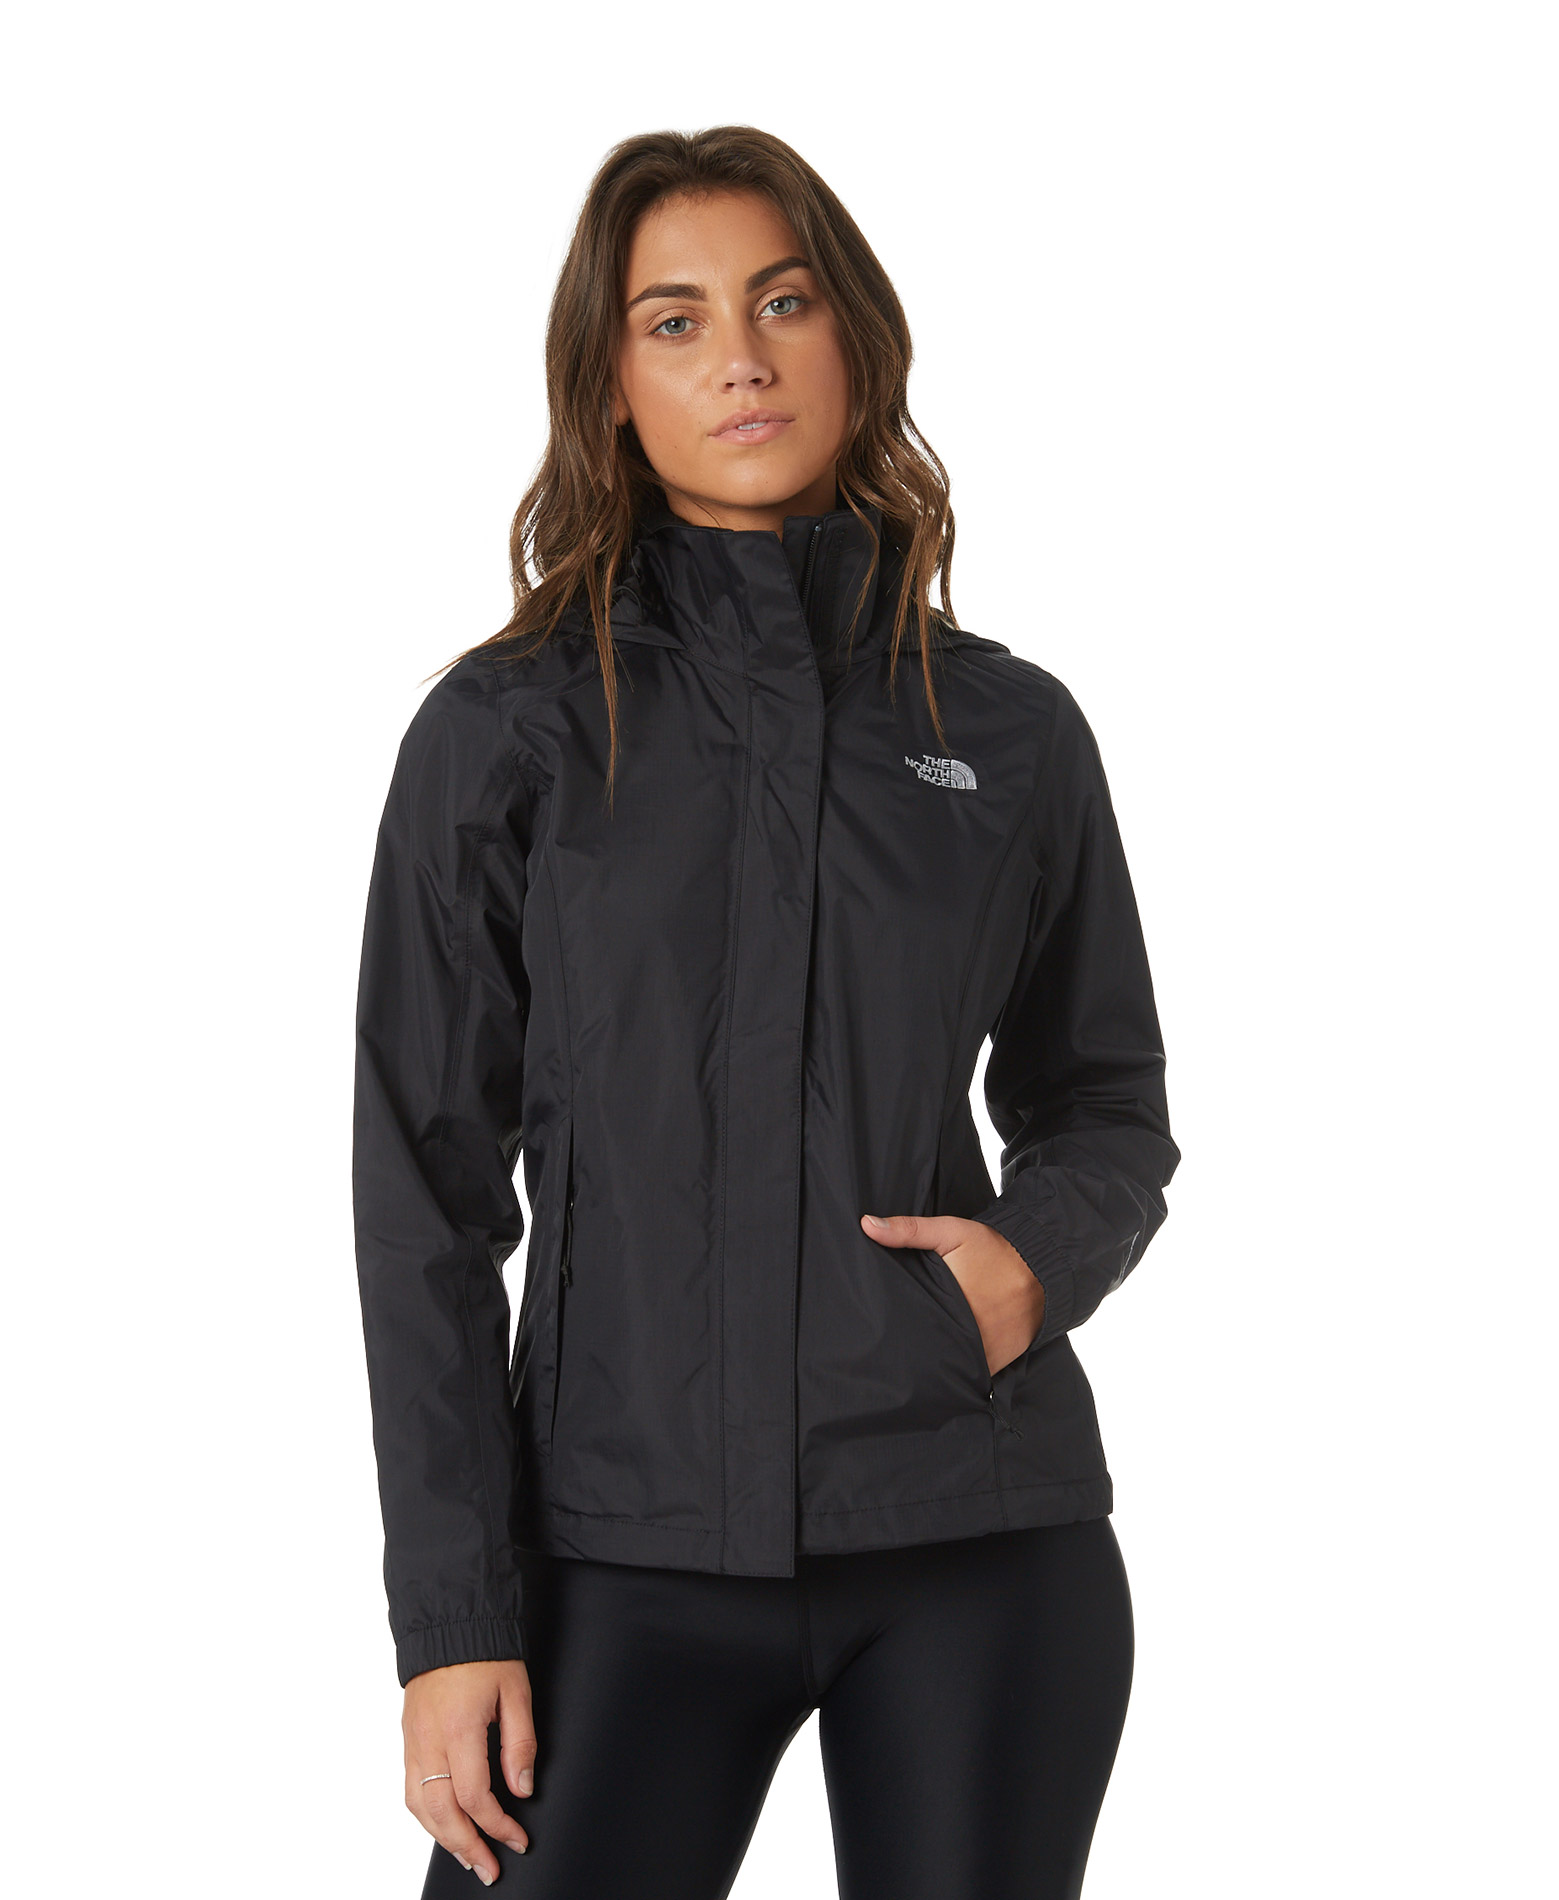 THE NORTH FACE W RESOLVE JKT NFAQBJJK3-JK3 Μαύρο